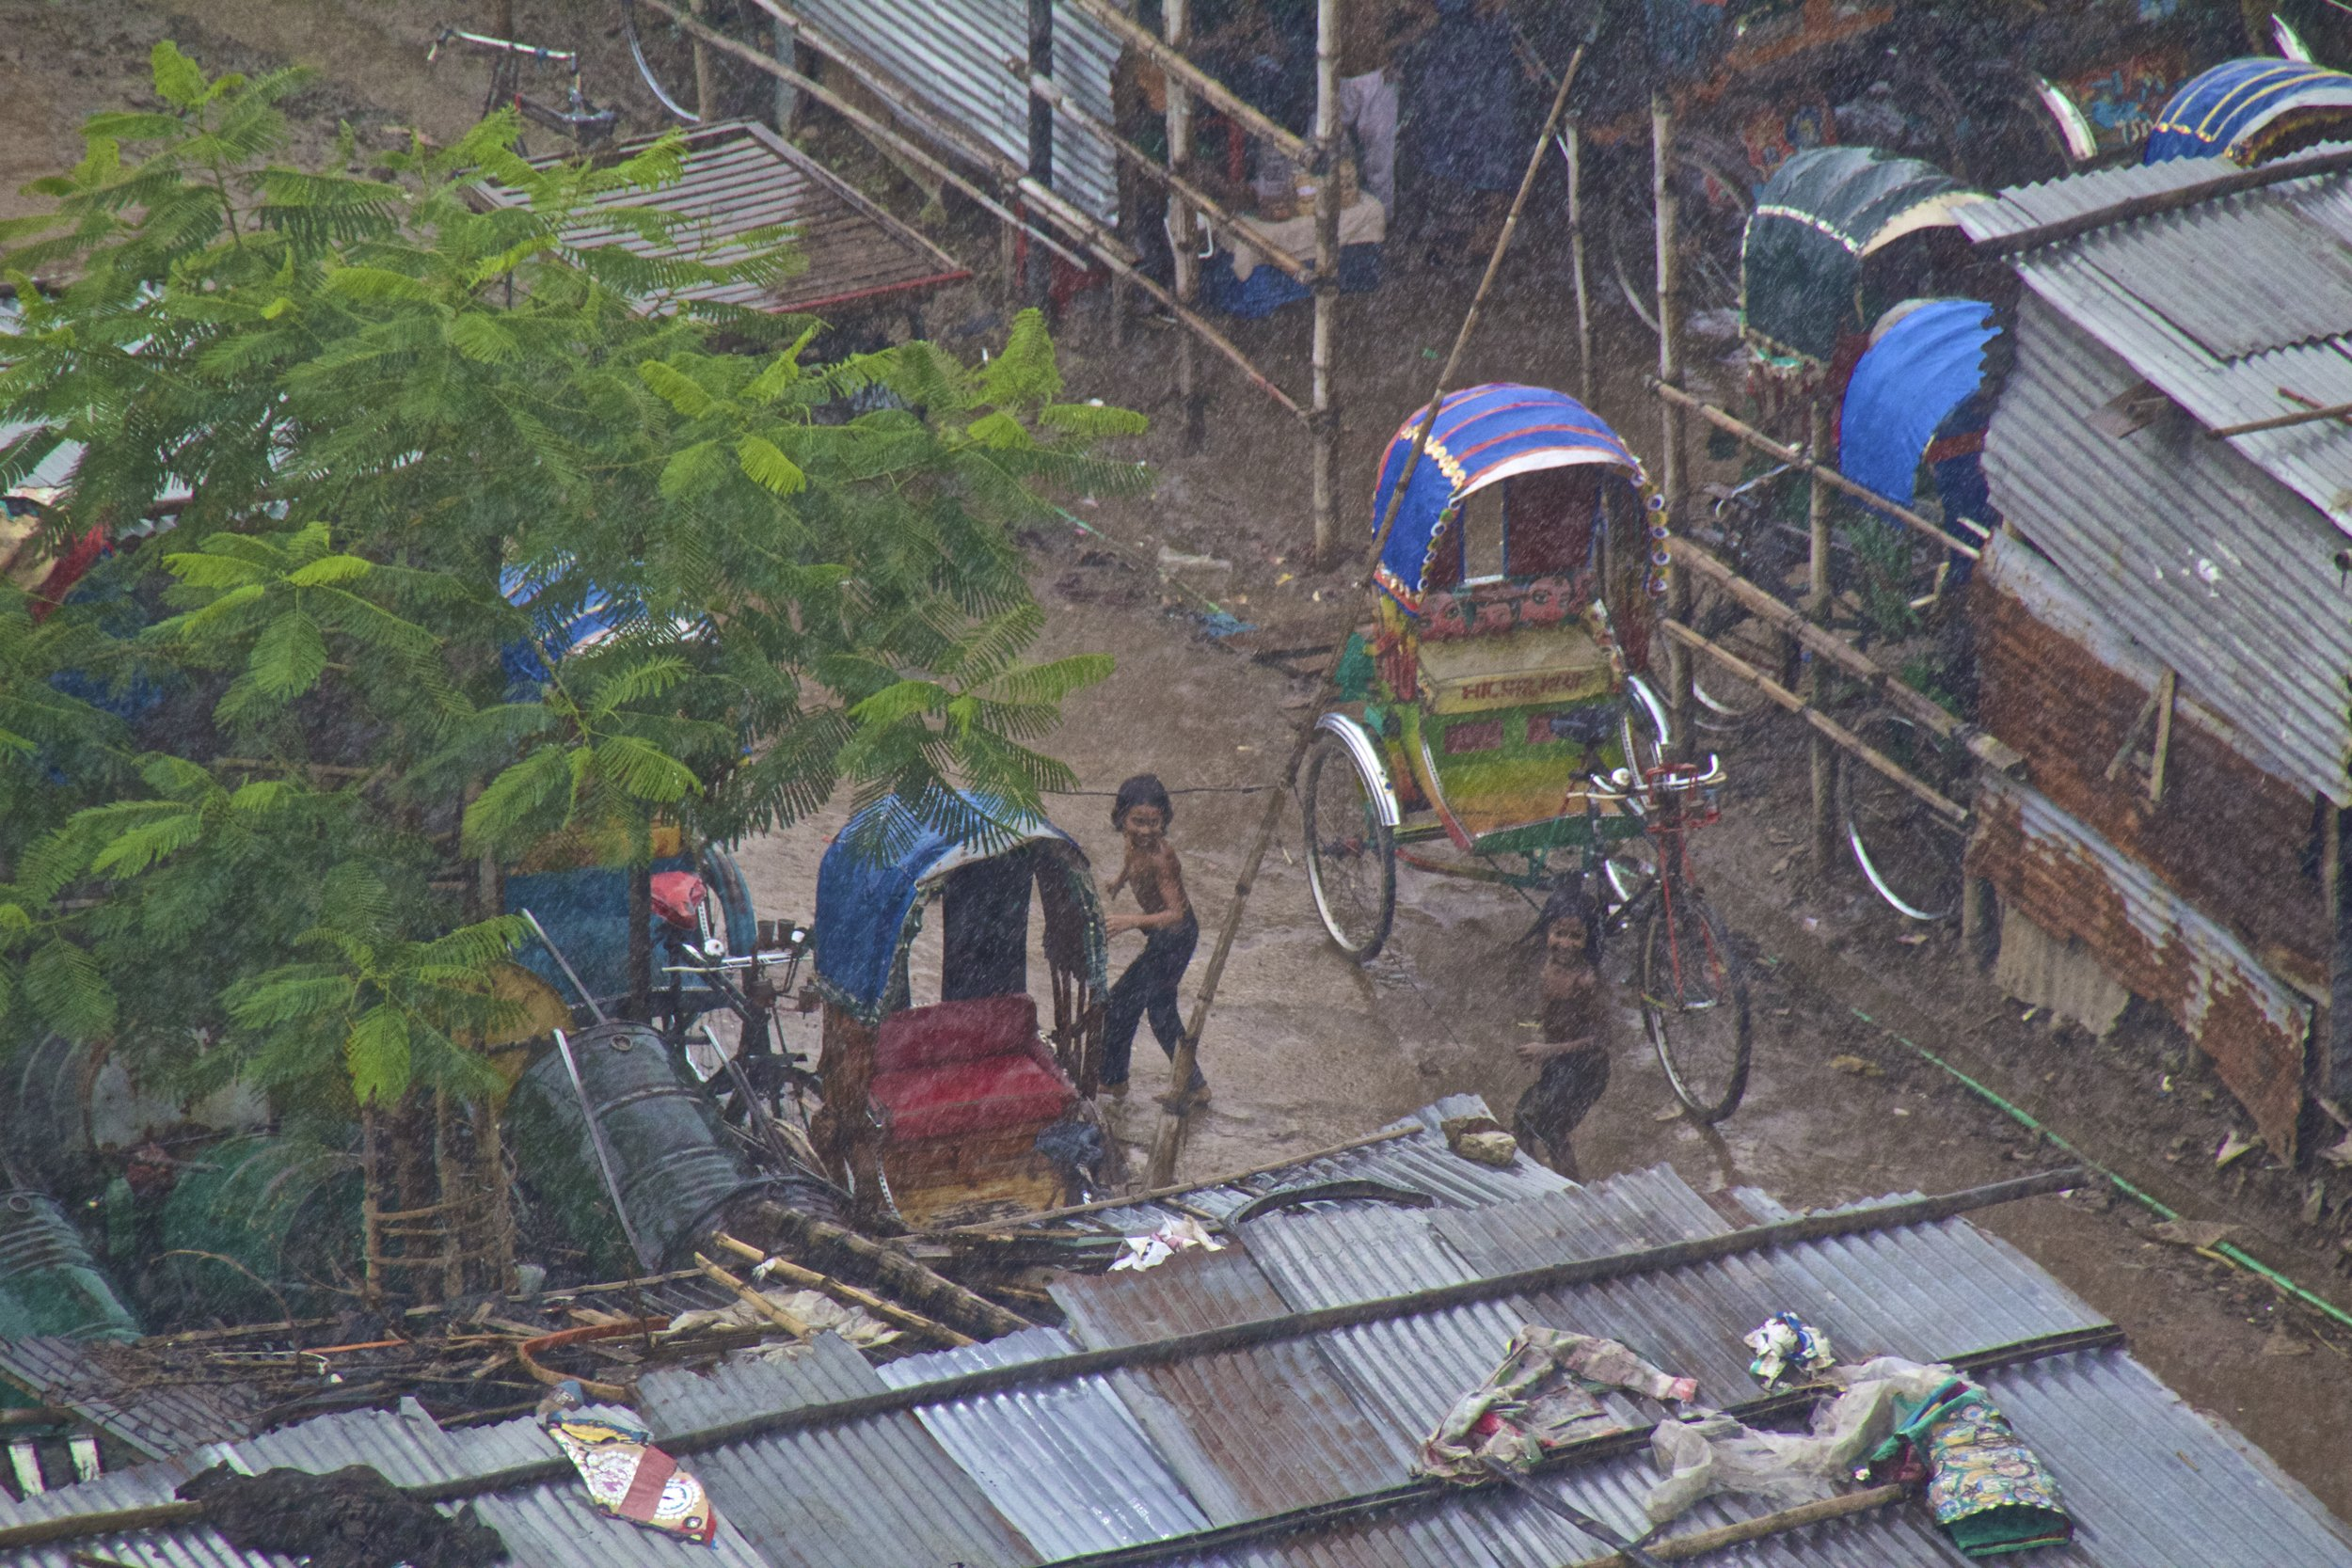 dhaka bangladesh slums monsoon rain 4.jpg